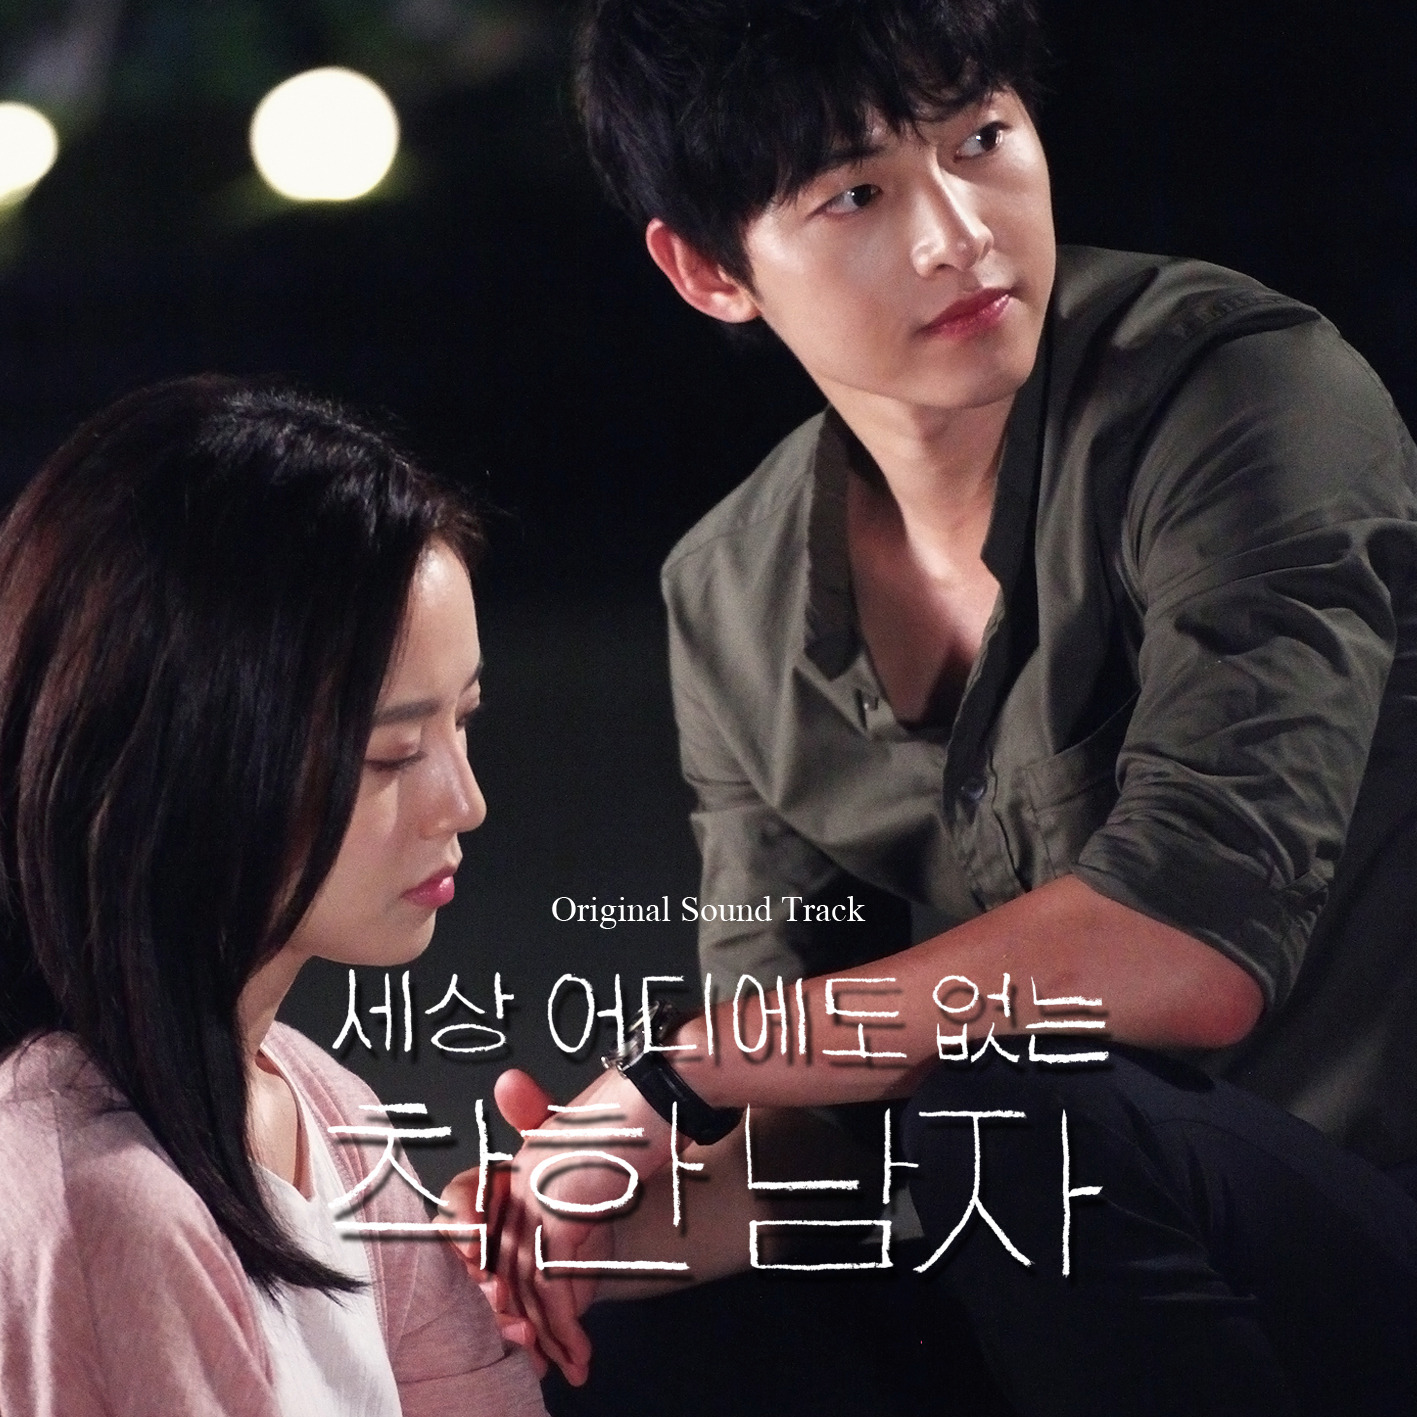 Daftar lagu ost marriage not dating